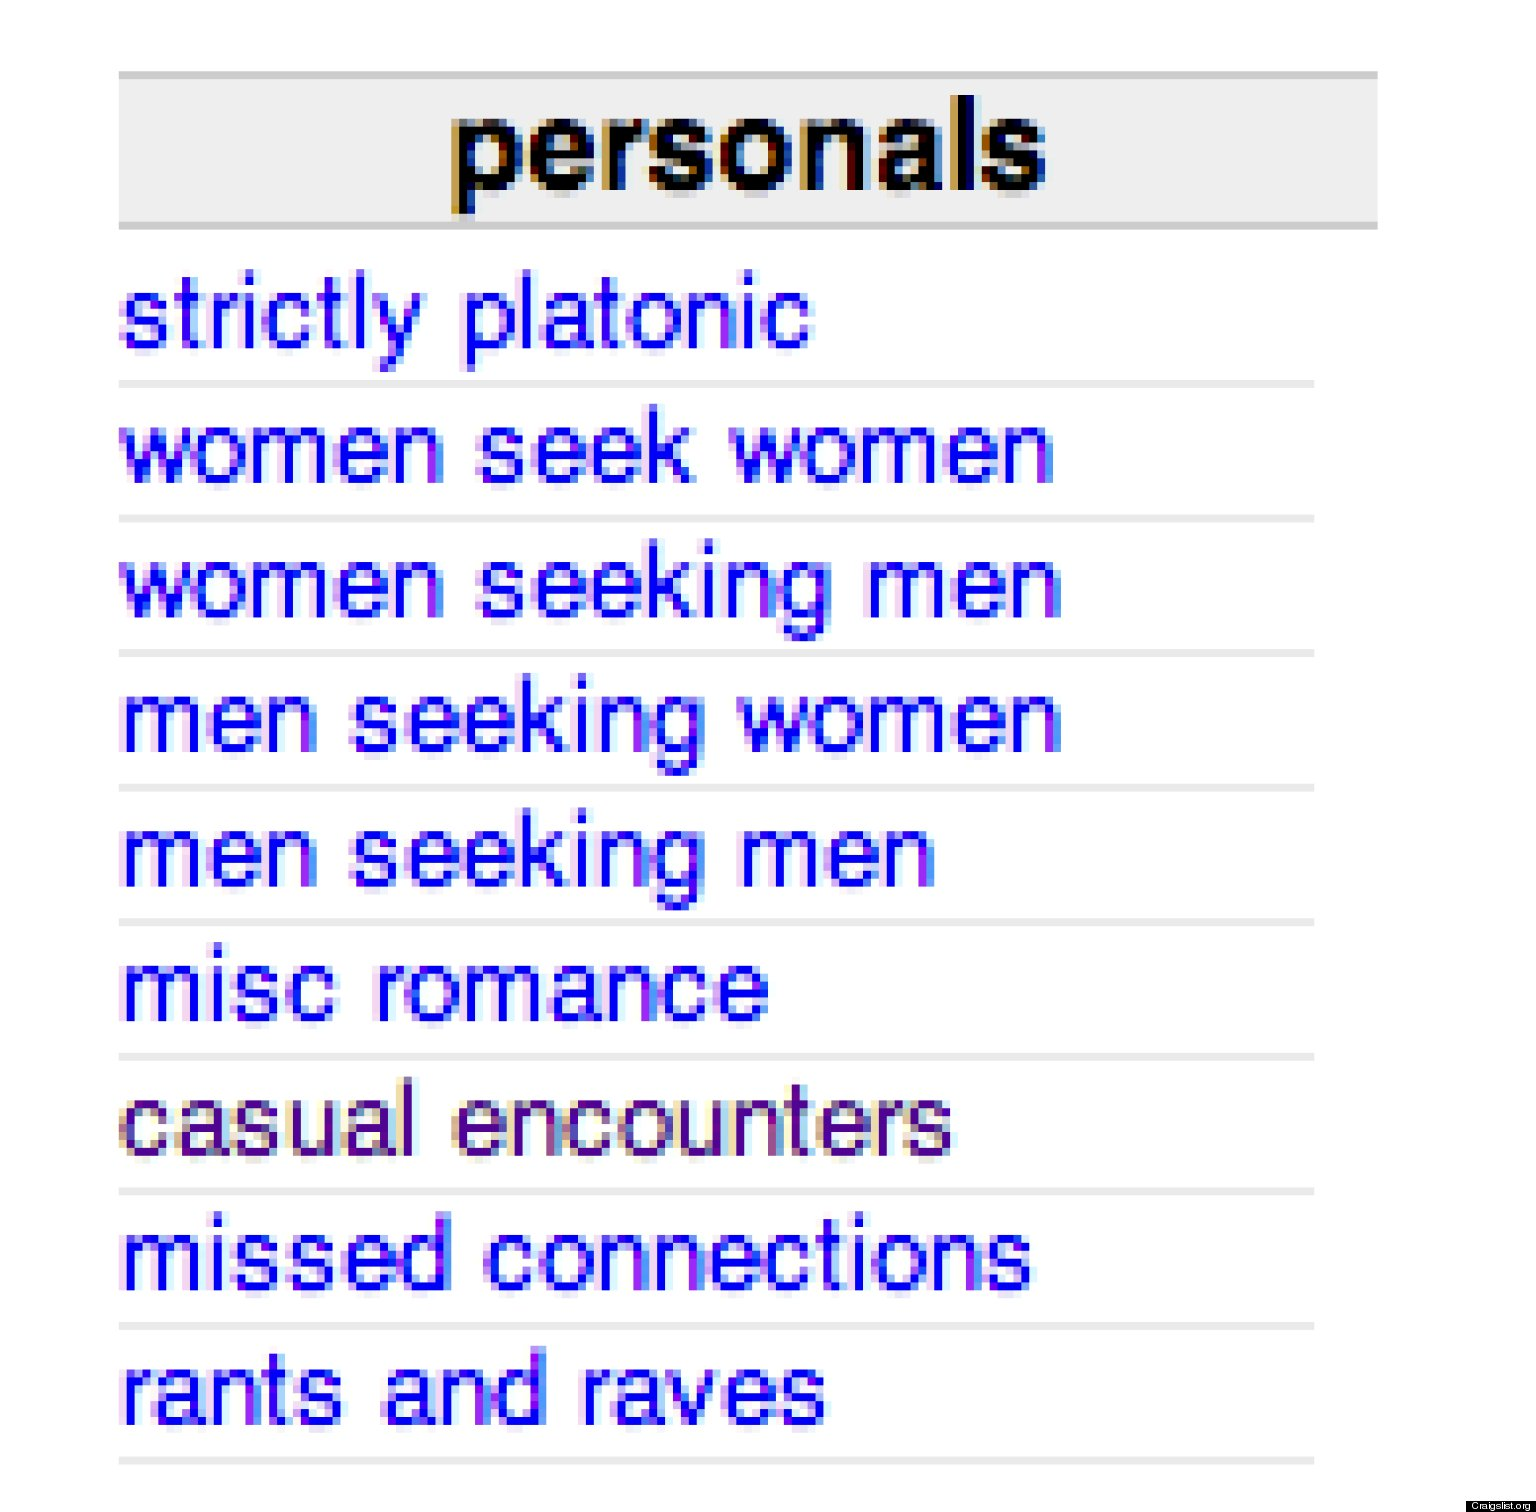 Intellectual Encounters Singles For Dating Casual Fetish Looking